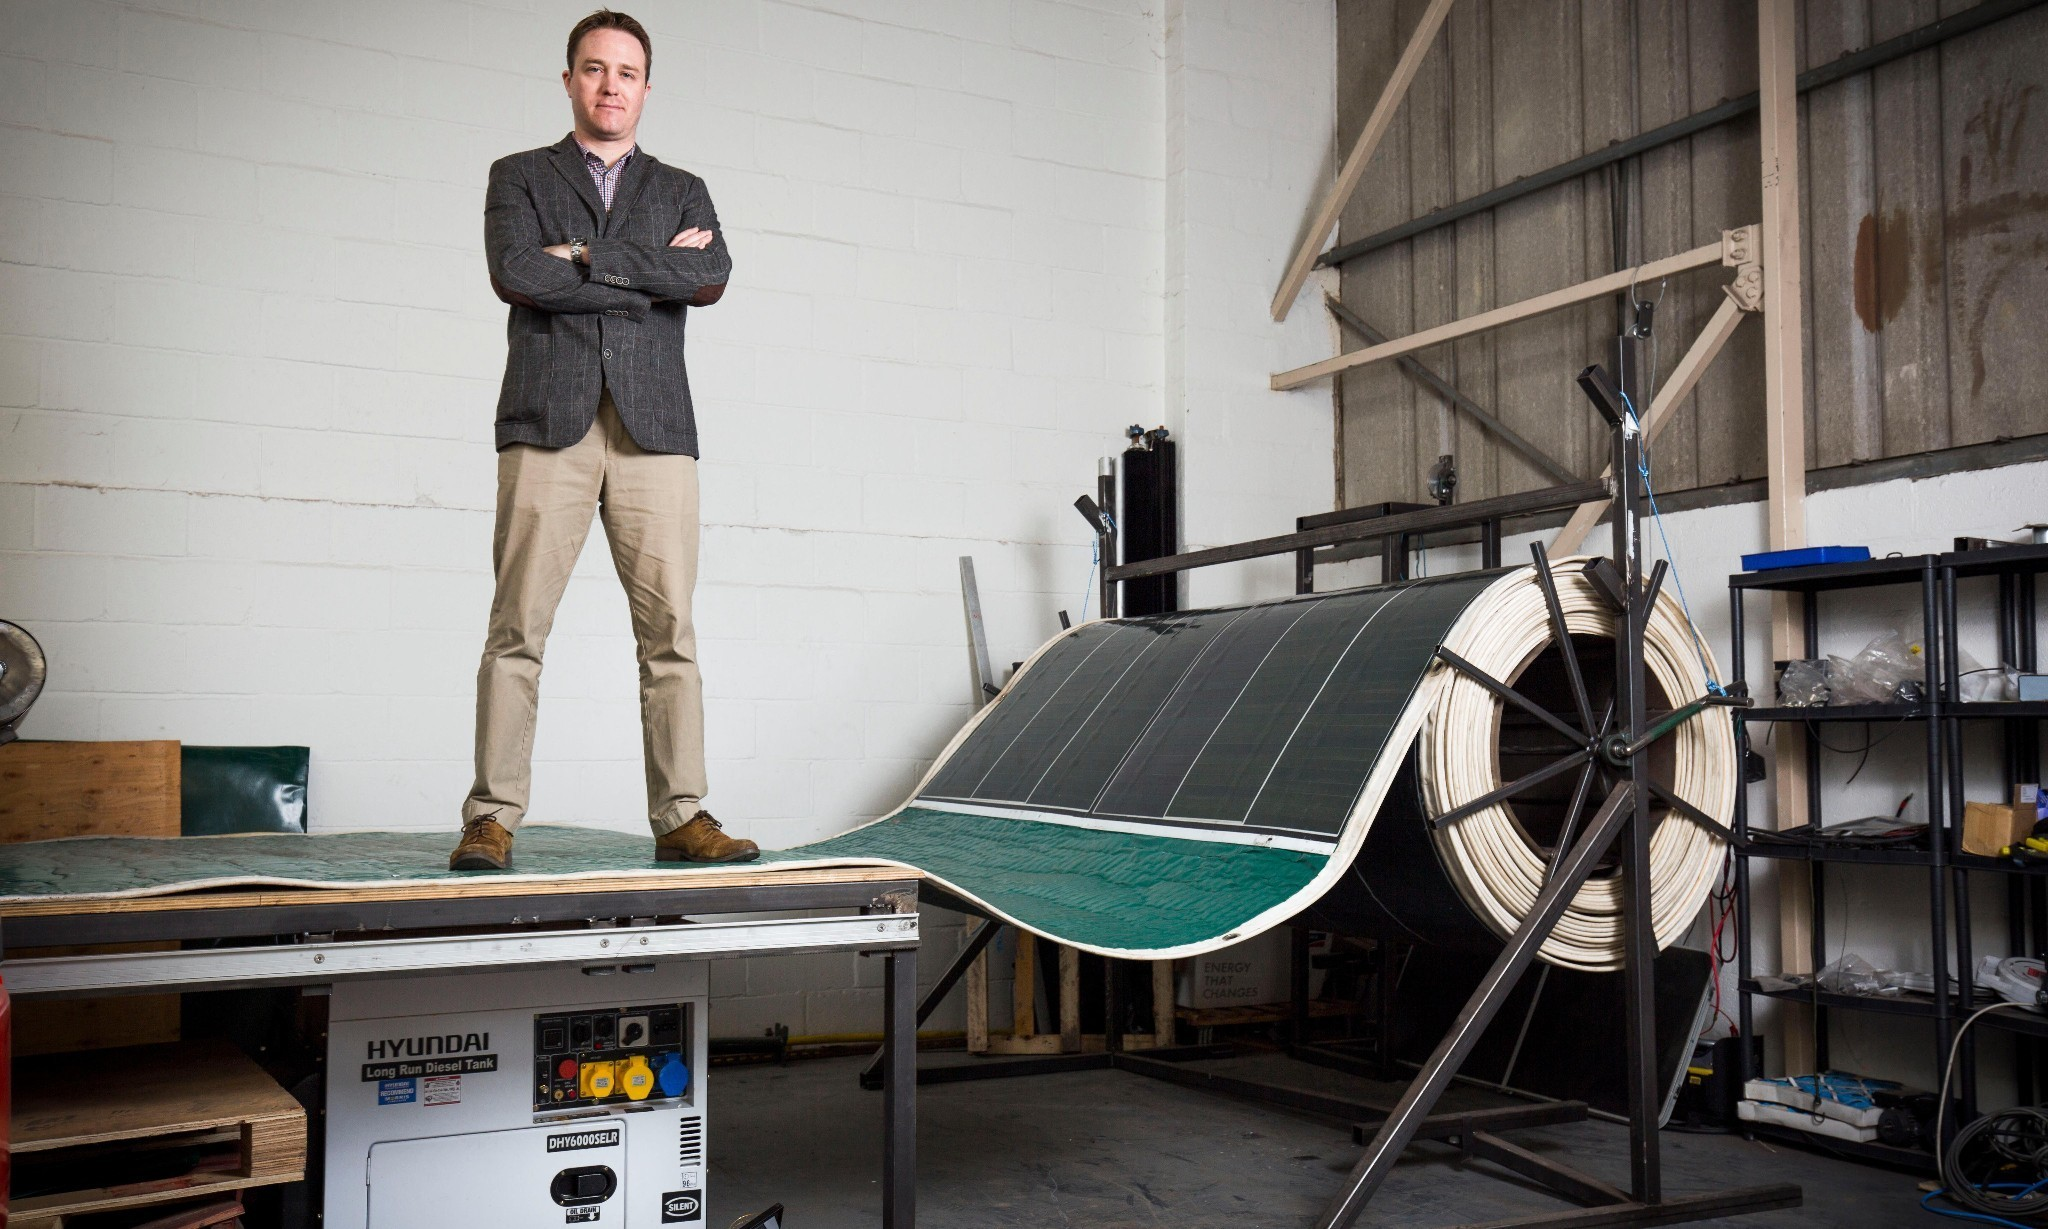 The innovators: portable solar panels that can be unrolled like a carpet